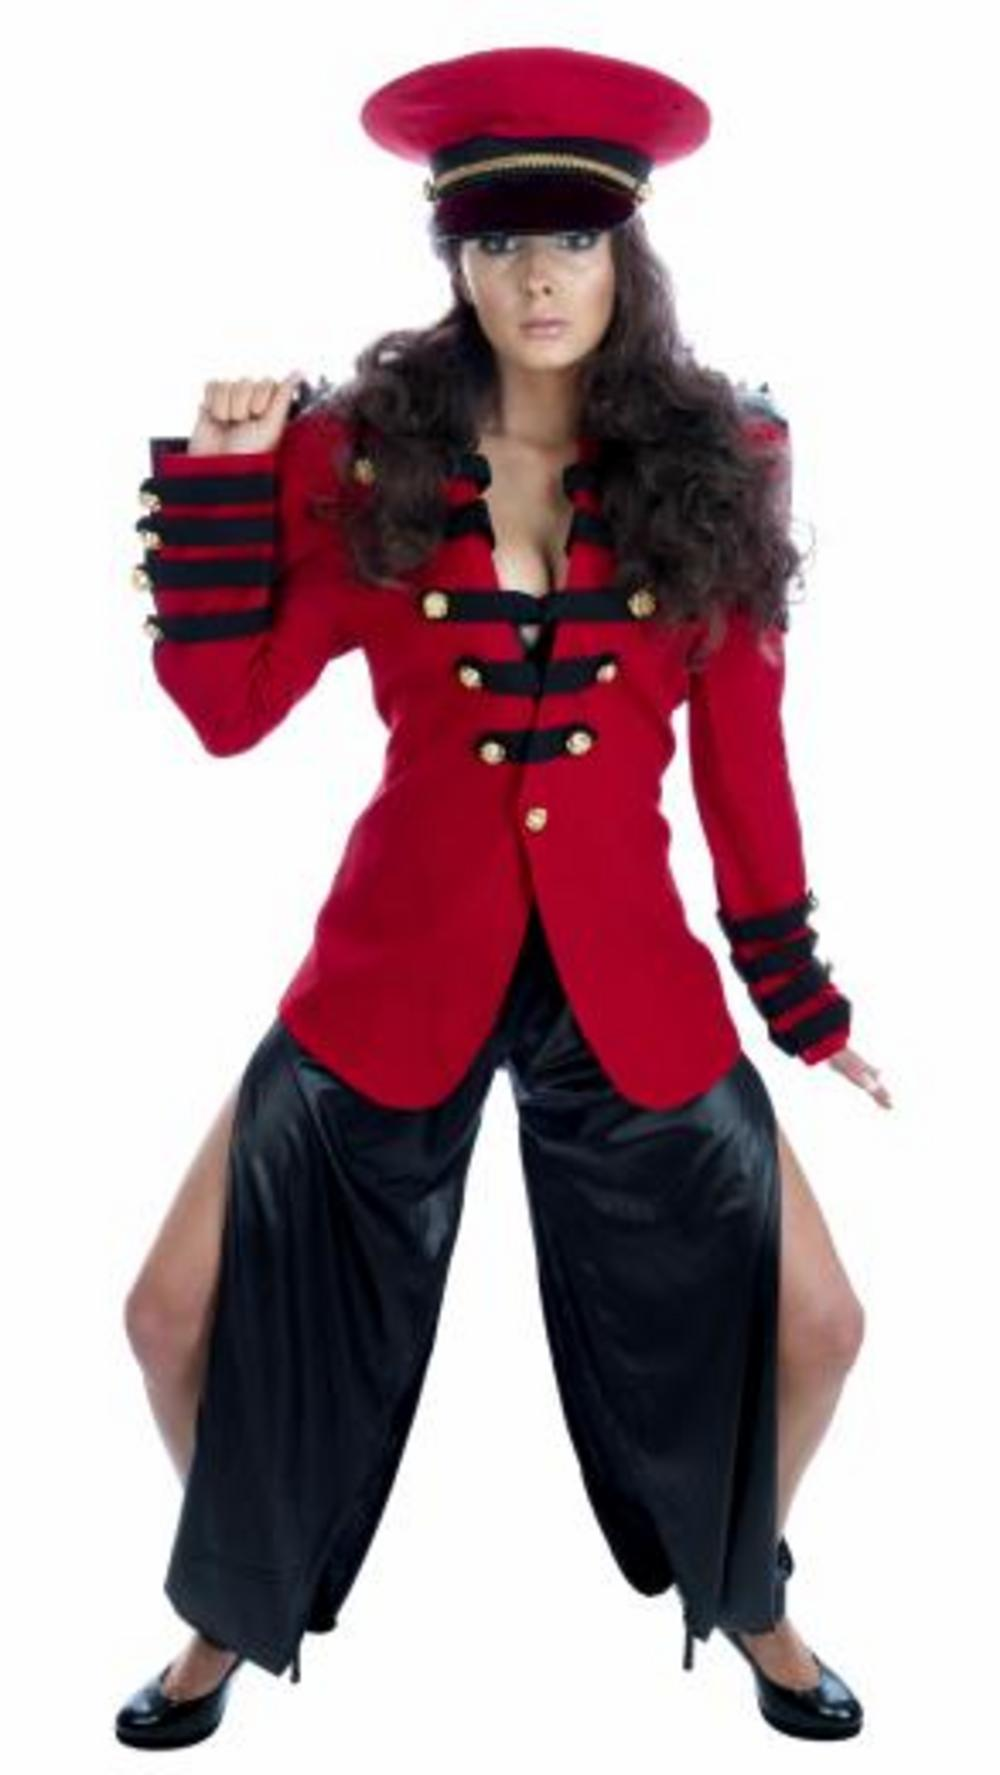 Pop Soldier Cheryl Cole Esque Costume